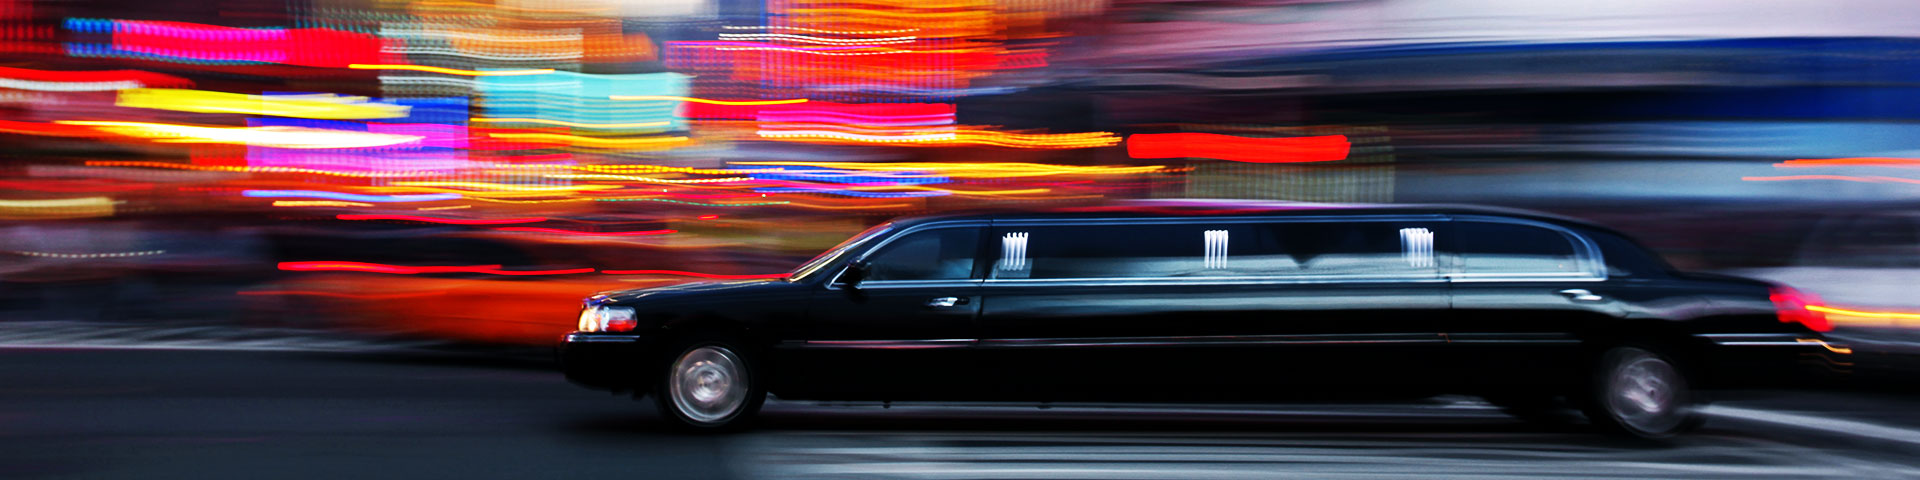 limo-driving-motion-blur-2